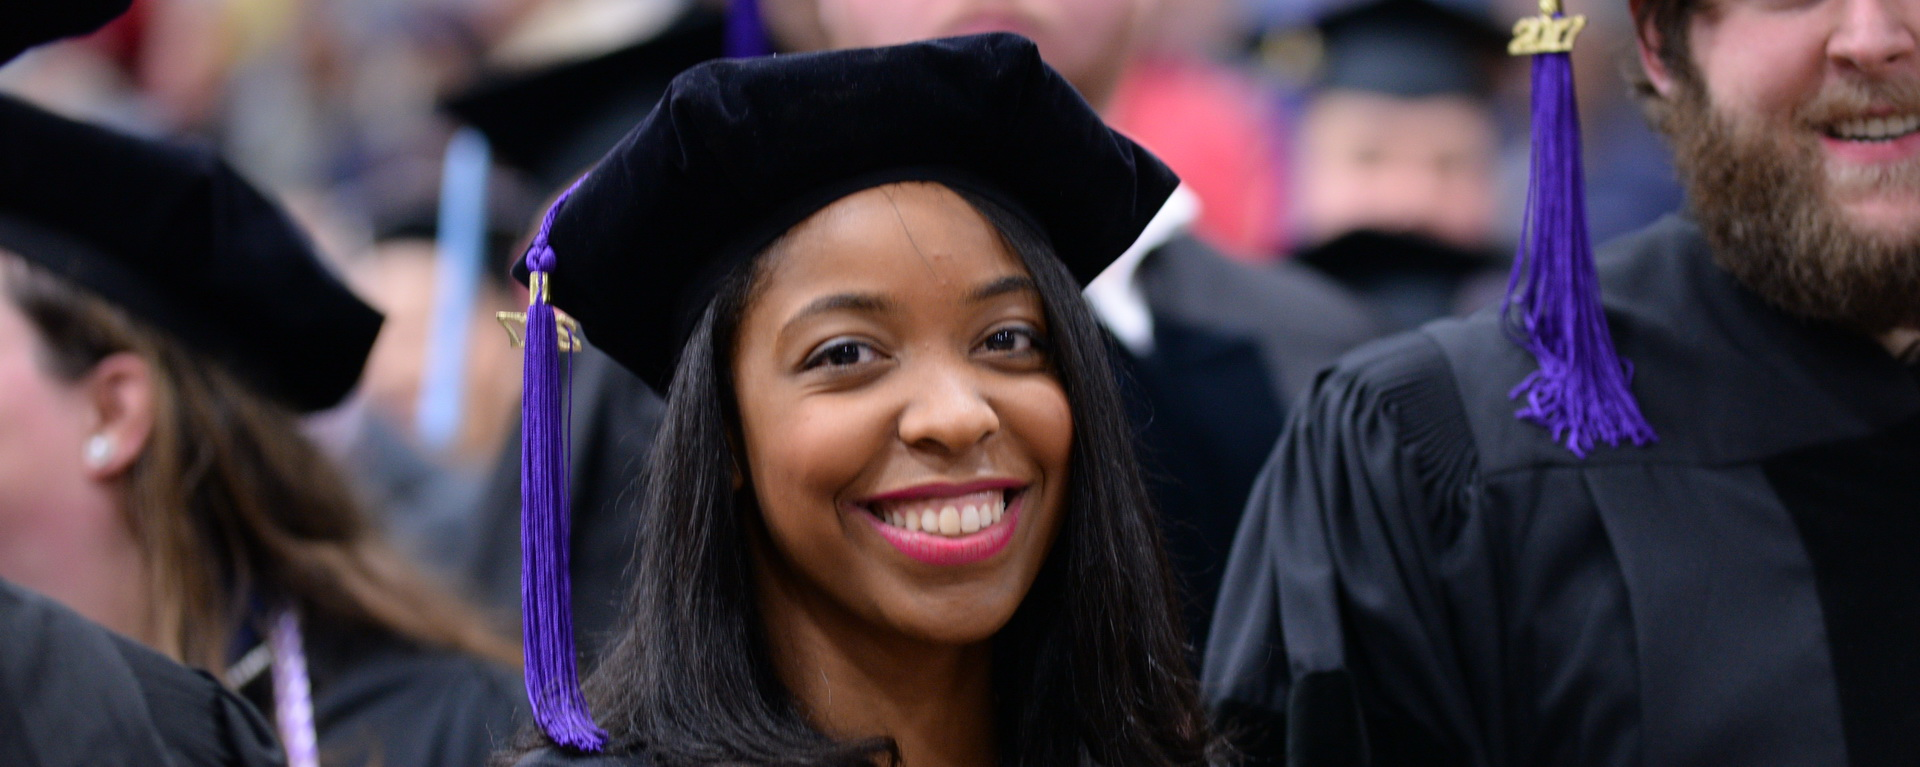 female student at graduation and smiling